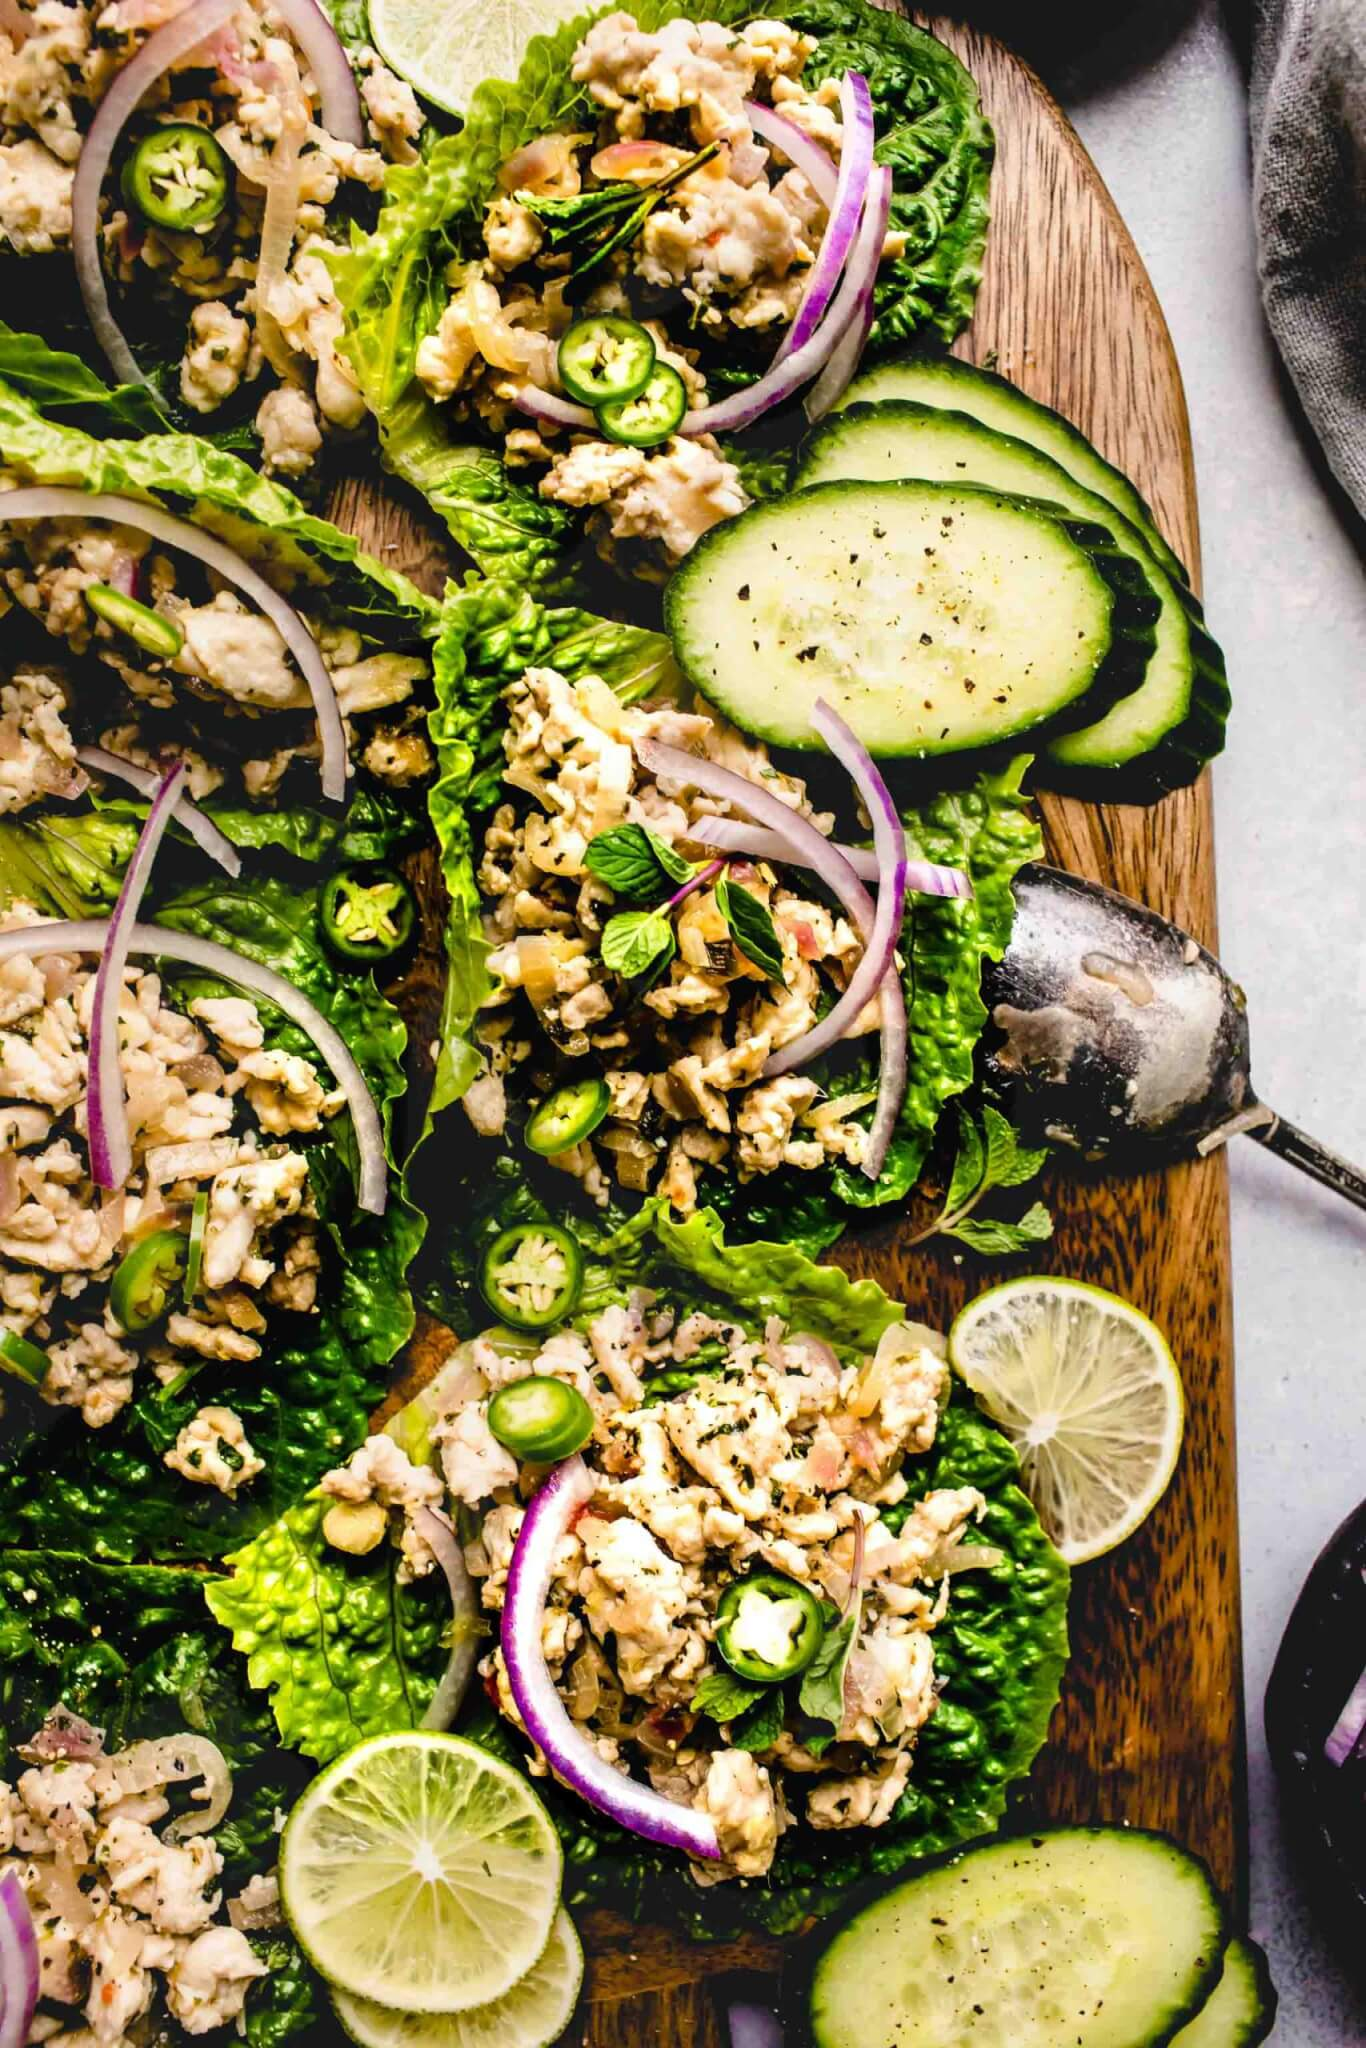 Larb gai lettuce wraps arranged on wood serving tray garnished with red onions and cucumber slices.